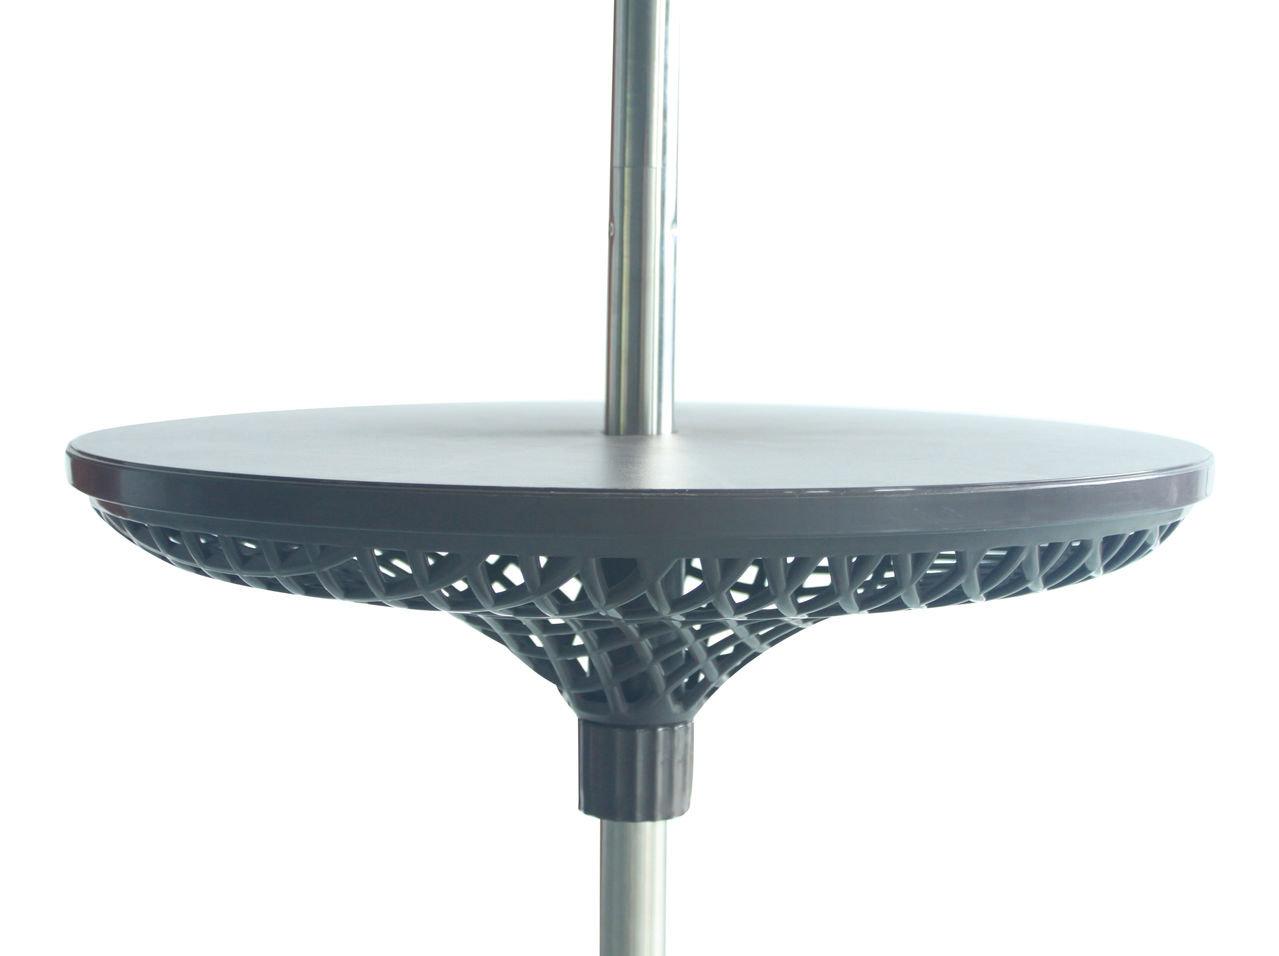 Photo of Leisuregrow parasol butler table - black